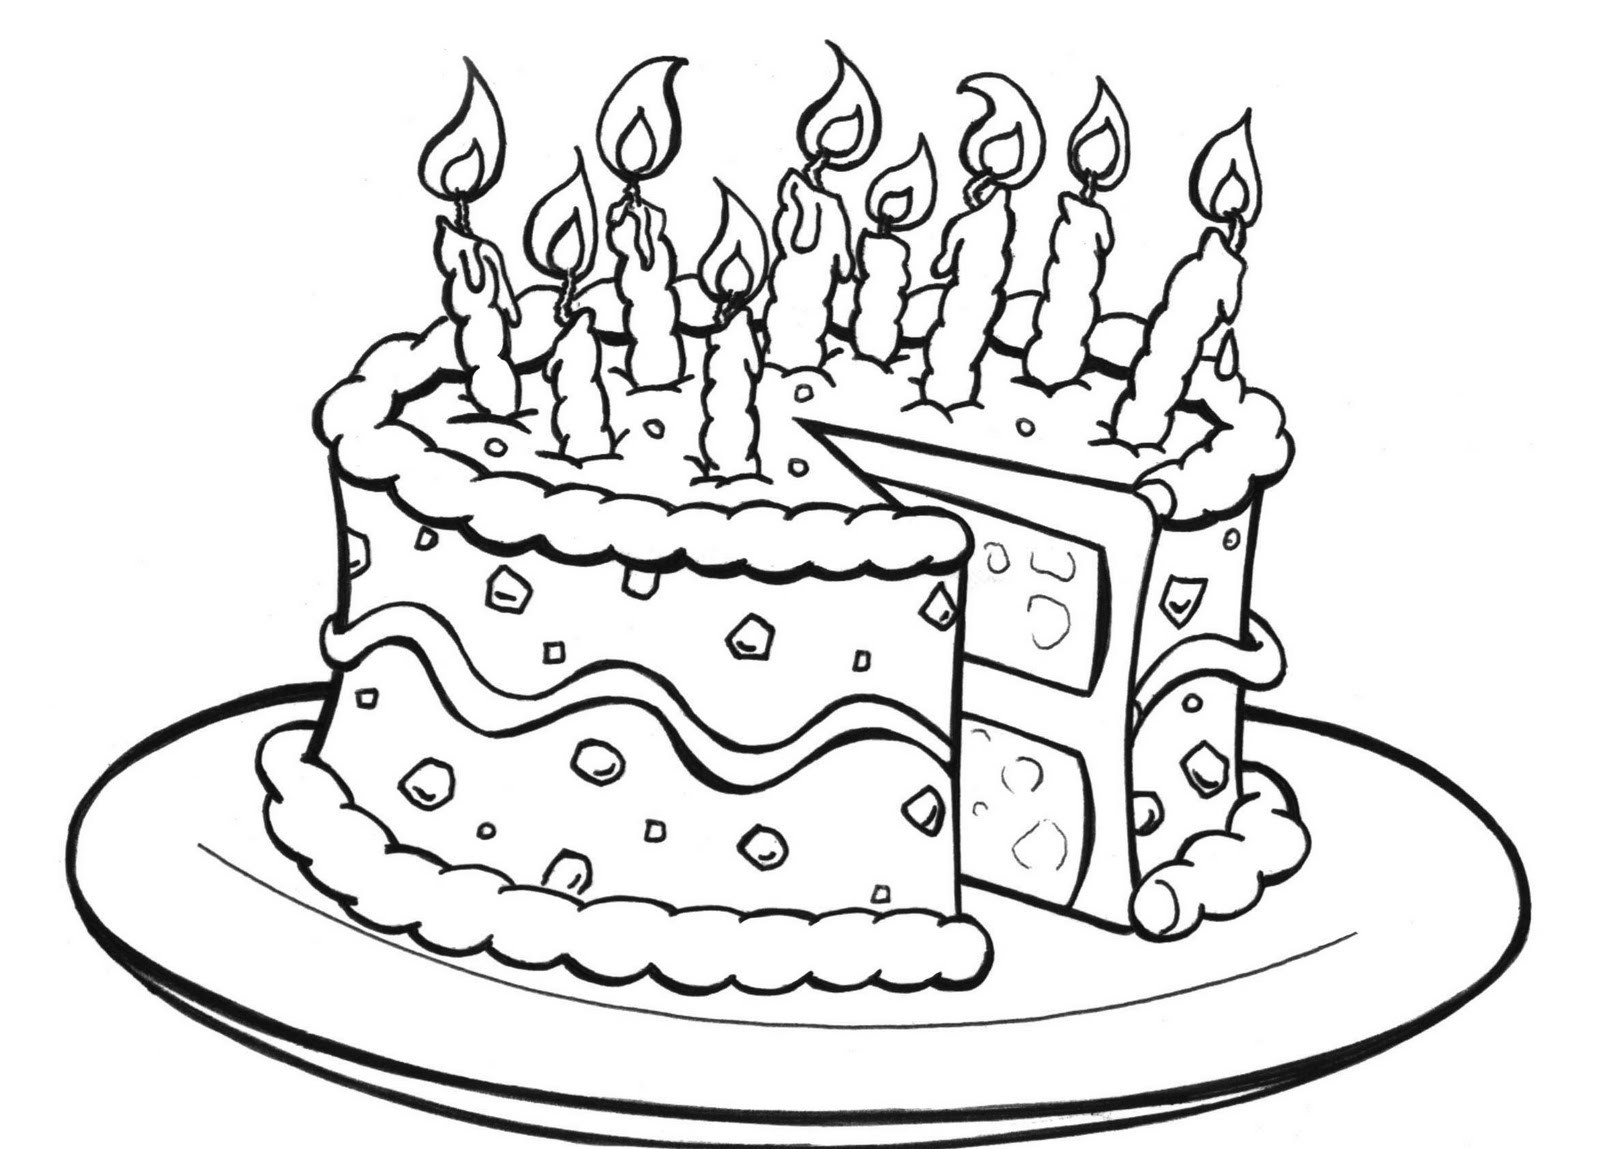 happy birthday coloring sheets to print ; 1-birthday-cake-coloring-pages